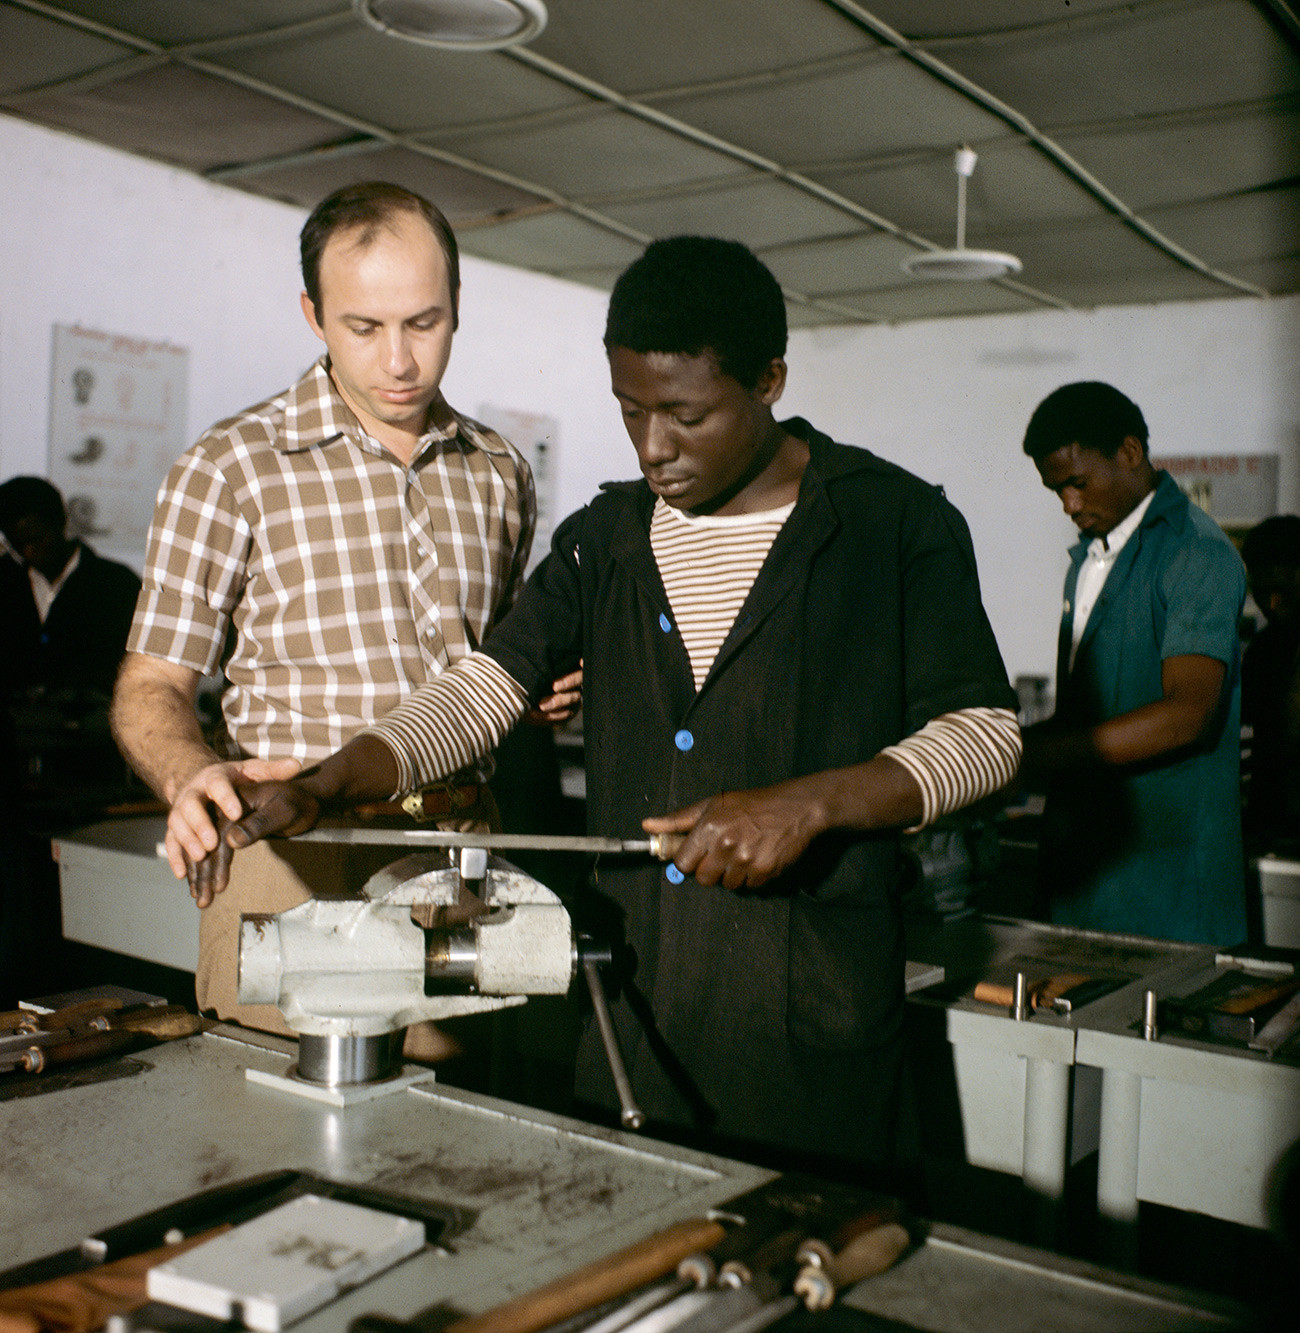 A Soviet locksmith teaching an African student.